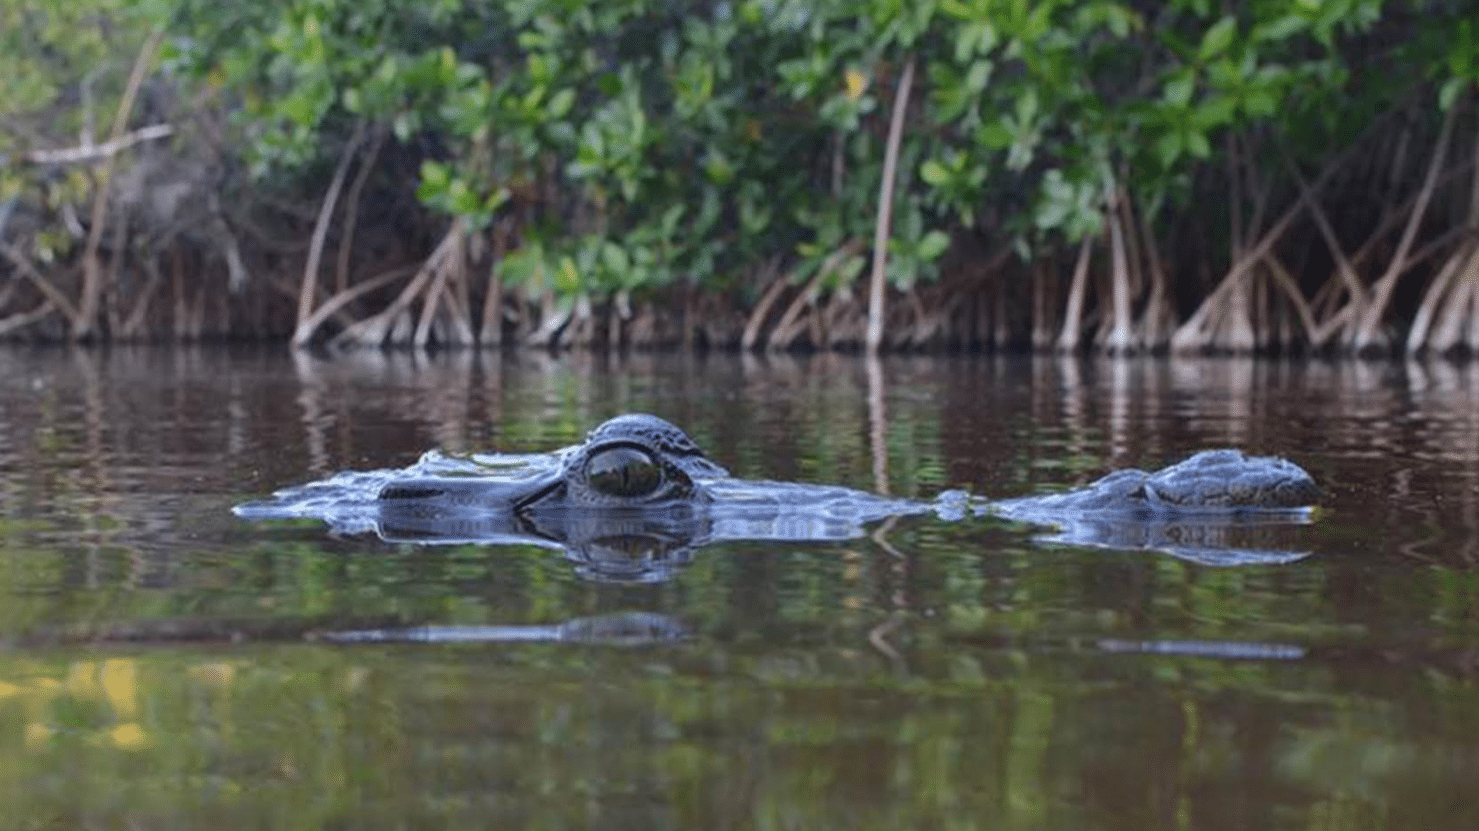 Changing Seas: American crocodiles face an uncertain future in Jamaica.